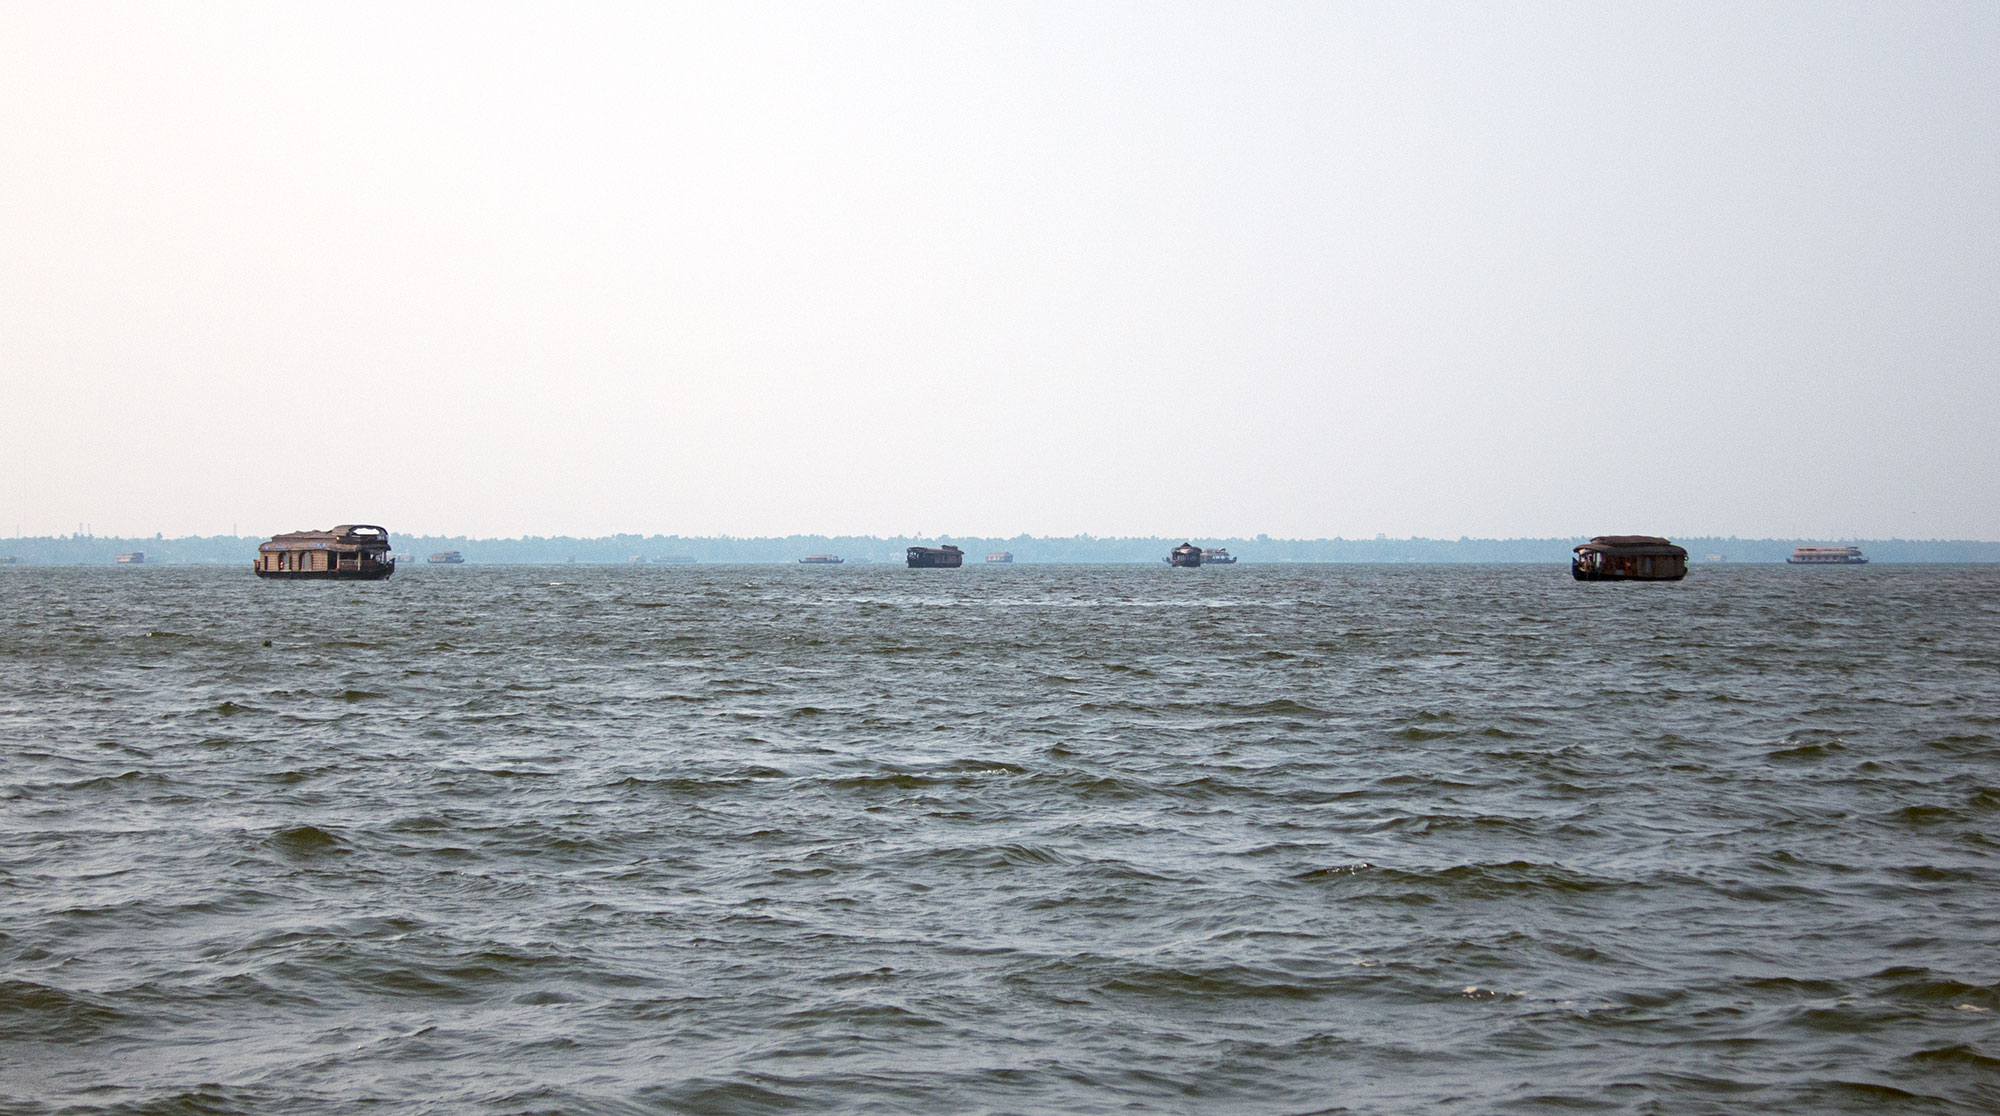 Other houseboats in the distance at the widest part of the backwater.